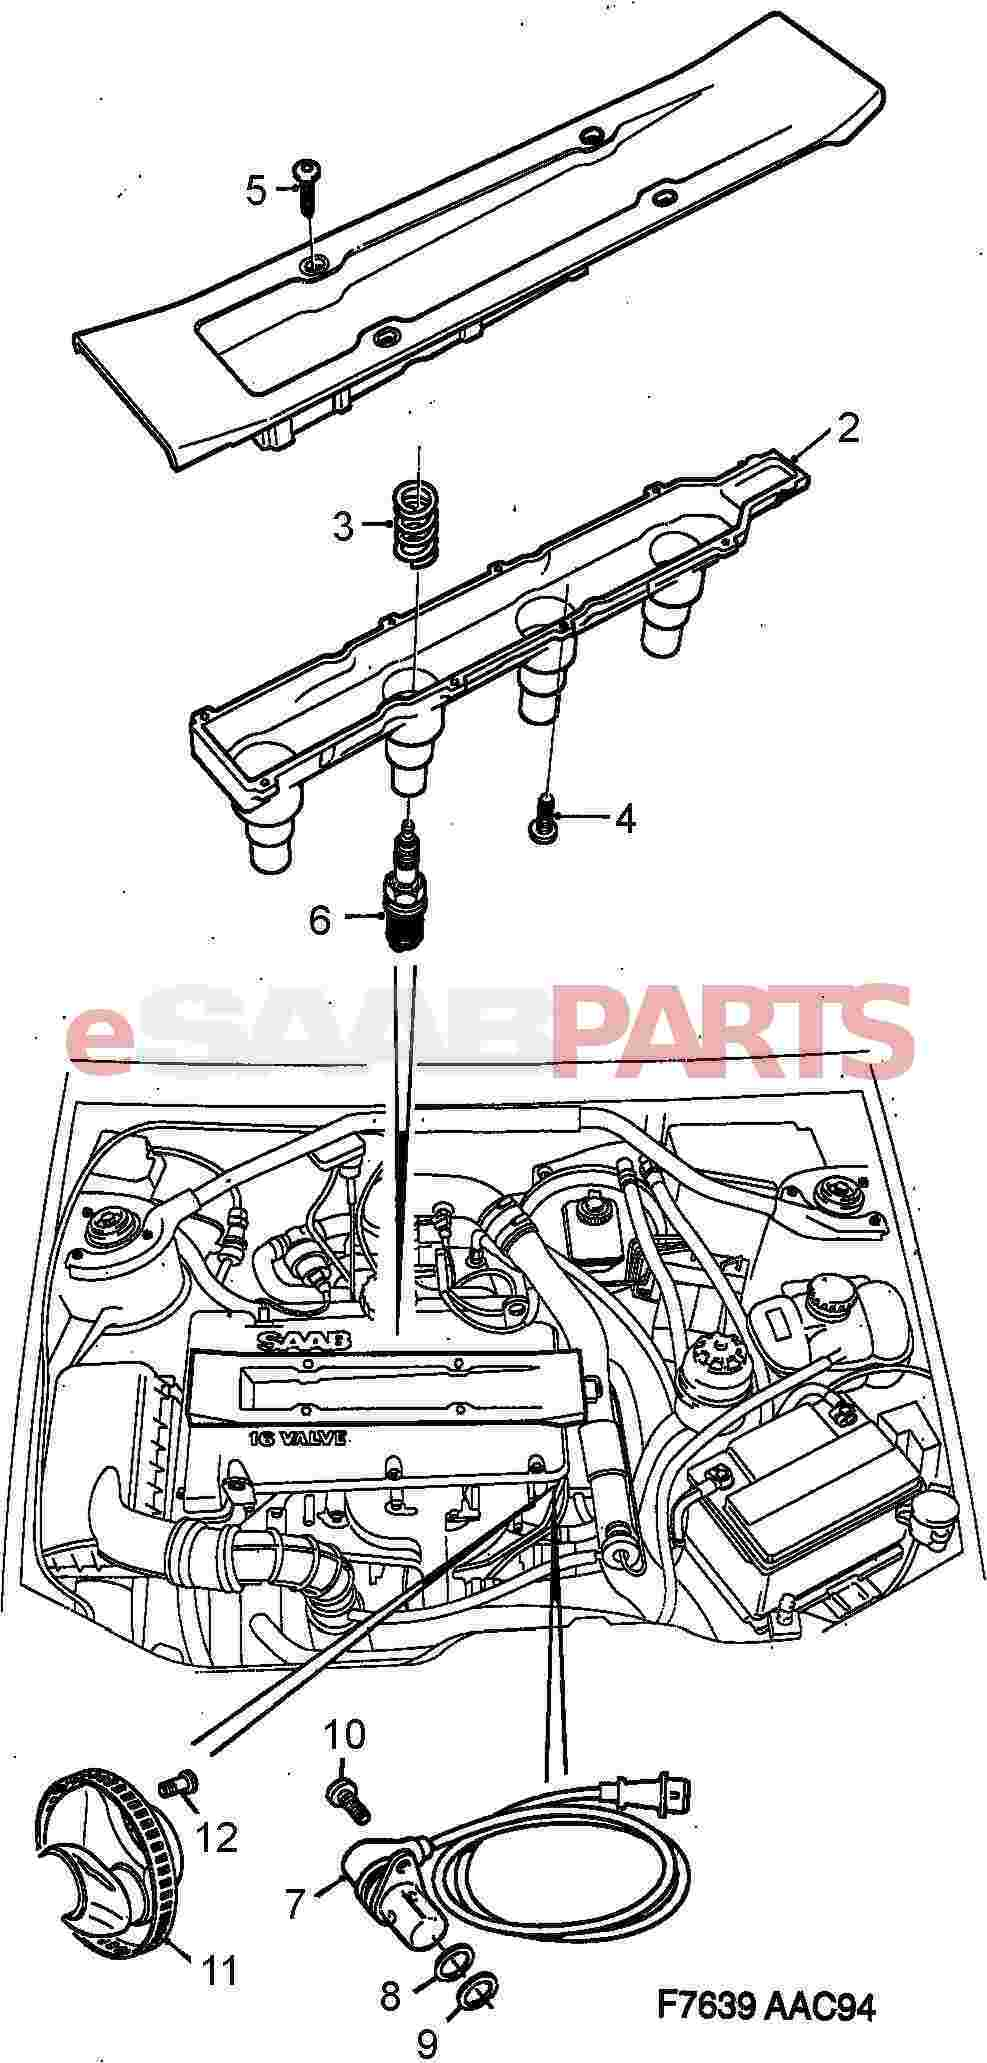 55561132  saab ignition discharge module